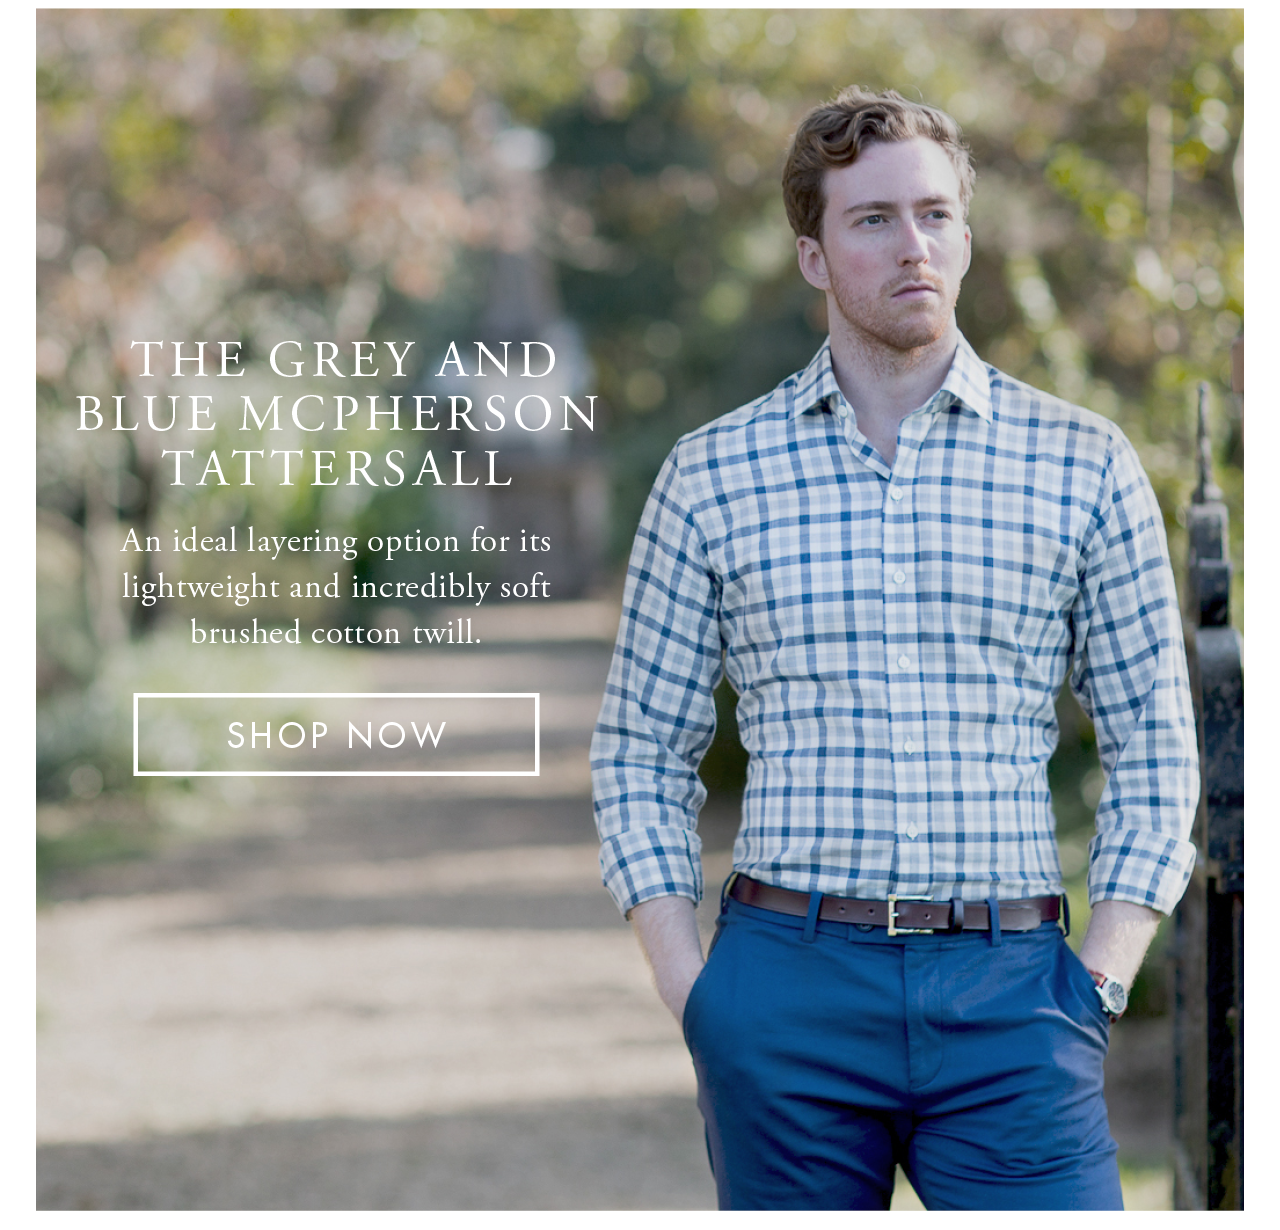 The Grey and Blue McPherson Tattersall